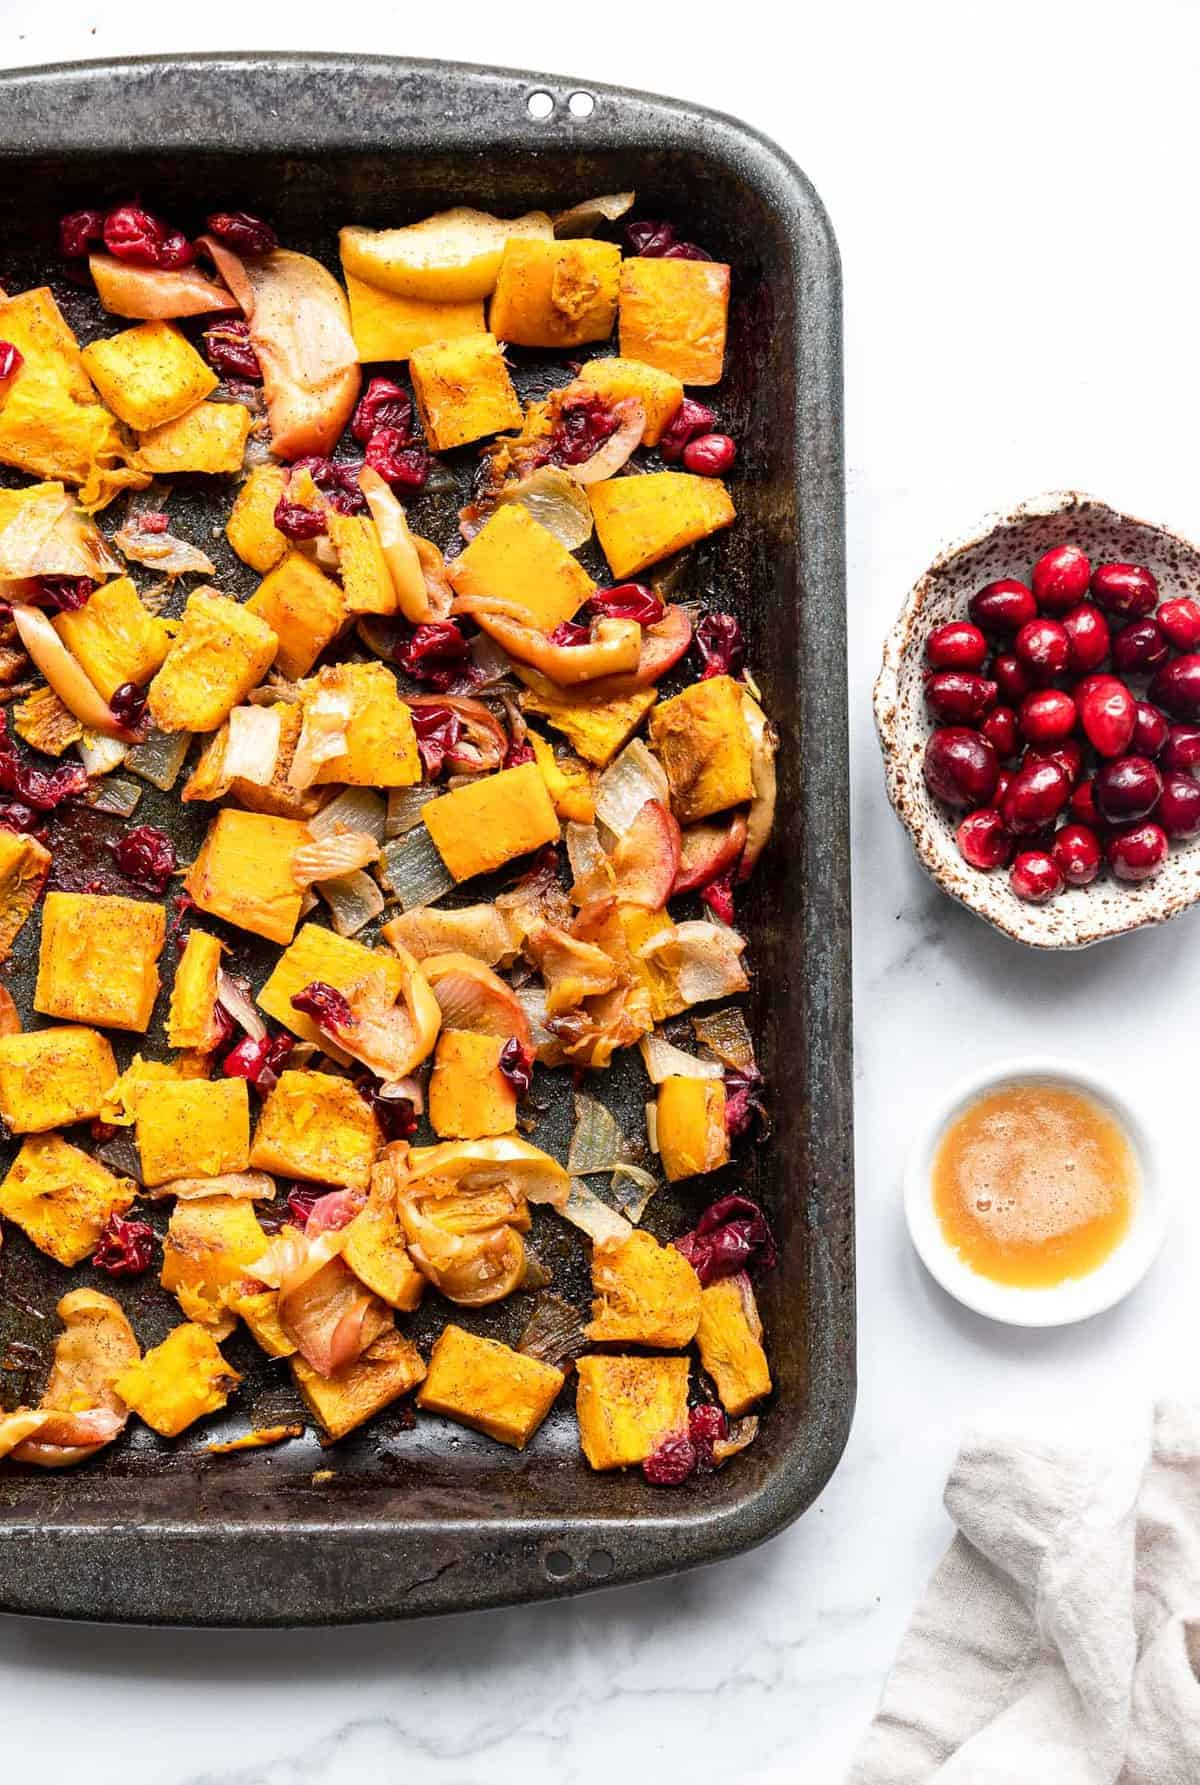 oven roasted pumpkin on a baking sheet with cranberries